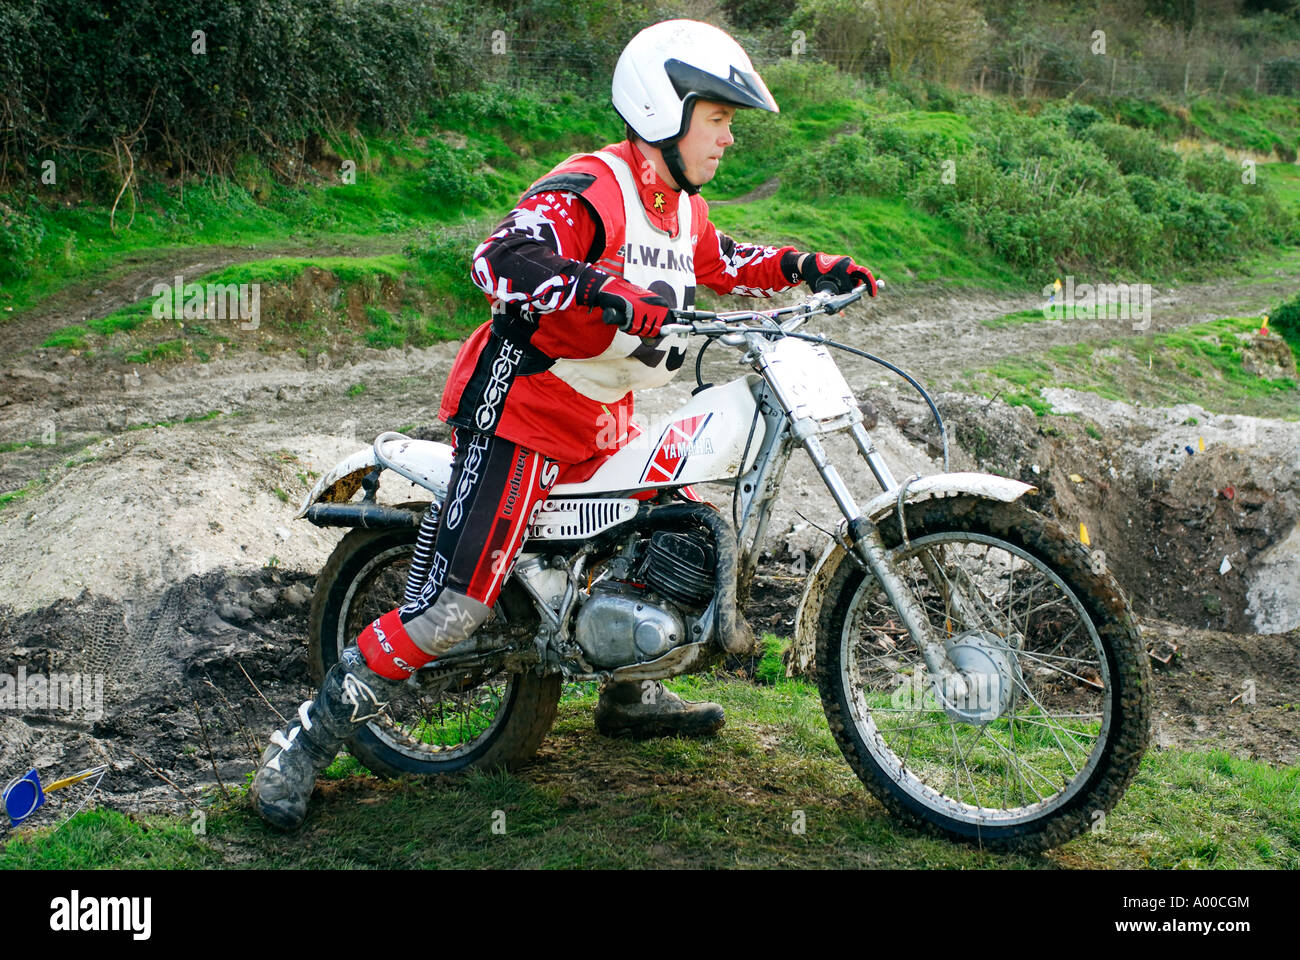 motorcycle trials rider negotiating tricky section of course on specialist built machine / motorbike - Stock Image